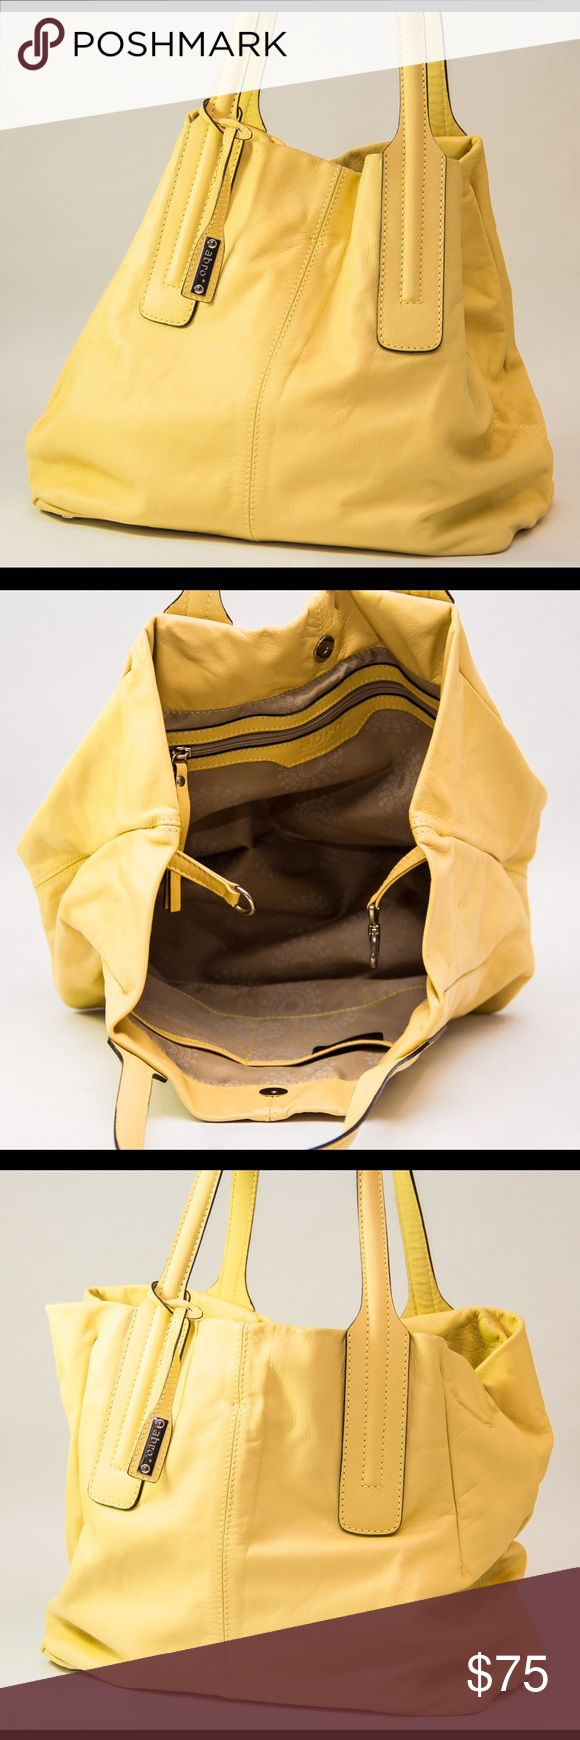 """ABRO European Genuine Leather Bag Absolutely stunning yellow handbag, in excellent condition! ABRO is a European brand, crafting everything from bags to watches. This hobo-style bag can be worn multiple ways, and holds a ton! Don't miss your opportunity to own this perfect Spring accessory! Measures 17.5"""" L (not clasped) x 7.5"""" W x 11.5"""" D with 9"""" handle drop. Abro Bags Hobos"""